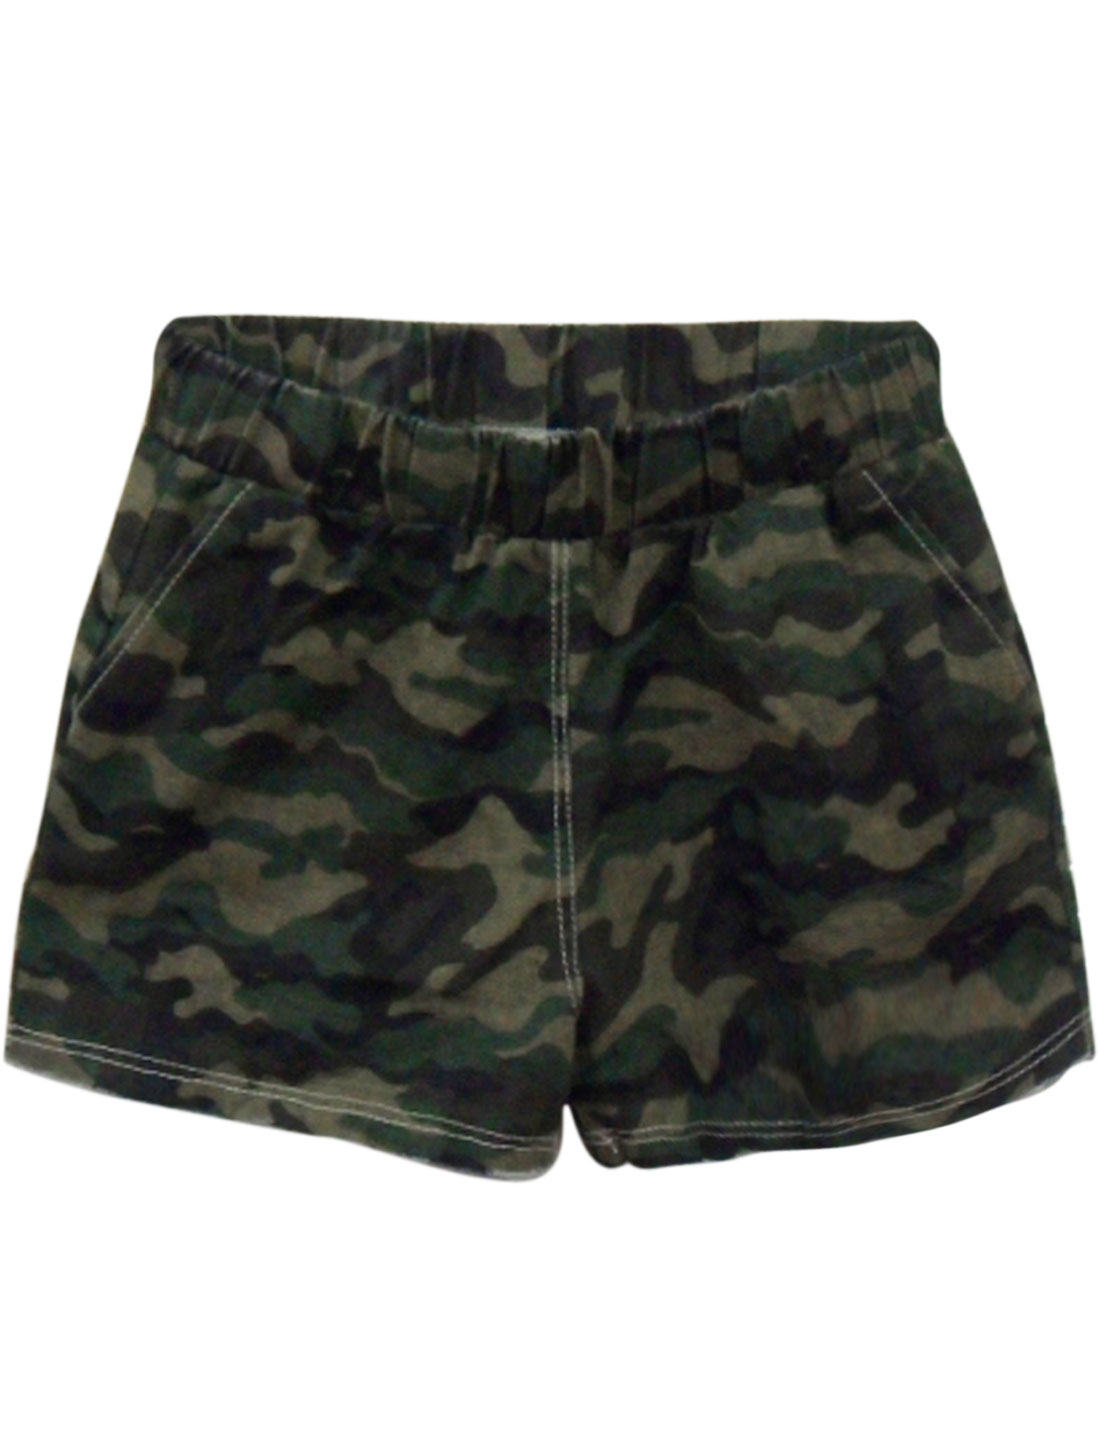 Women Camouflage Pattern Destroyed Hem Pockets Casual Shorts Beige Black XS